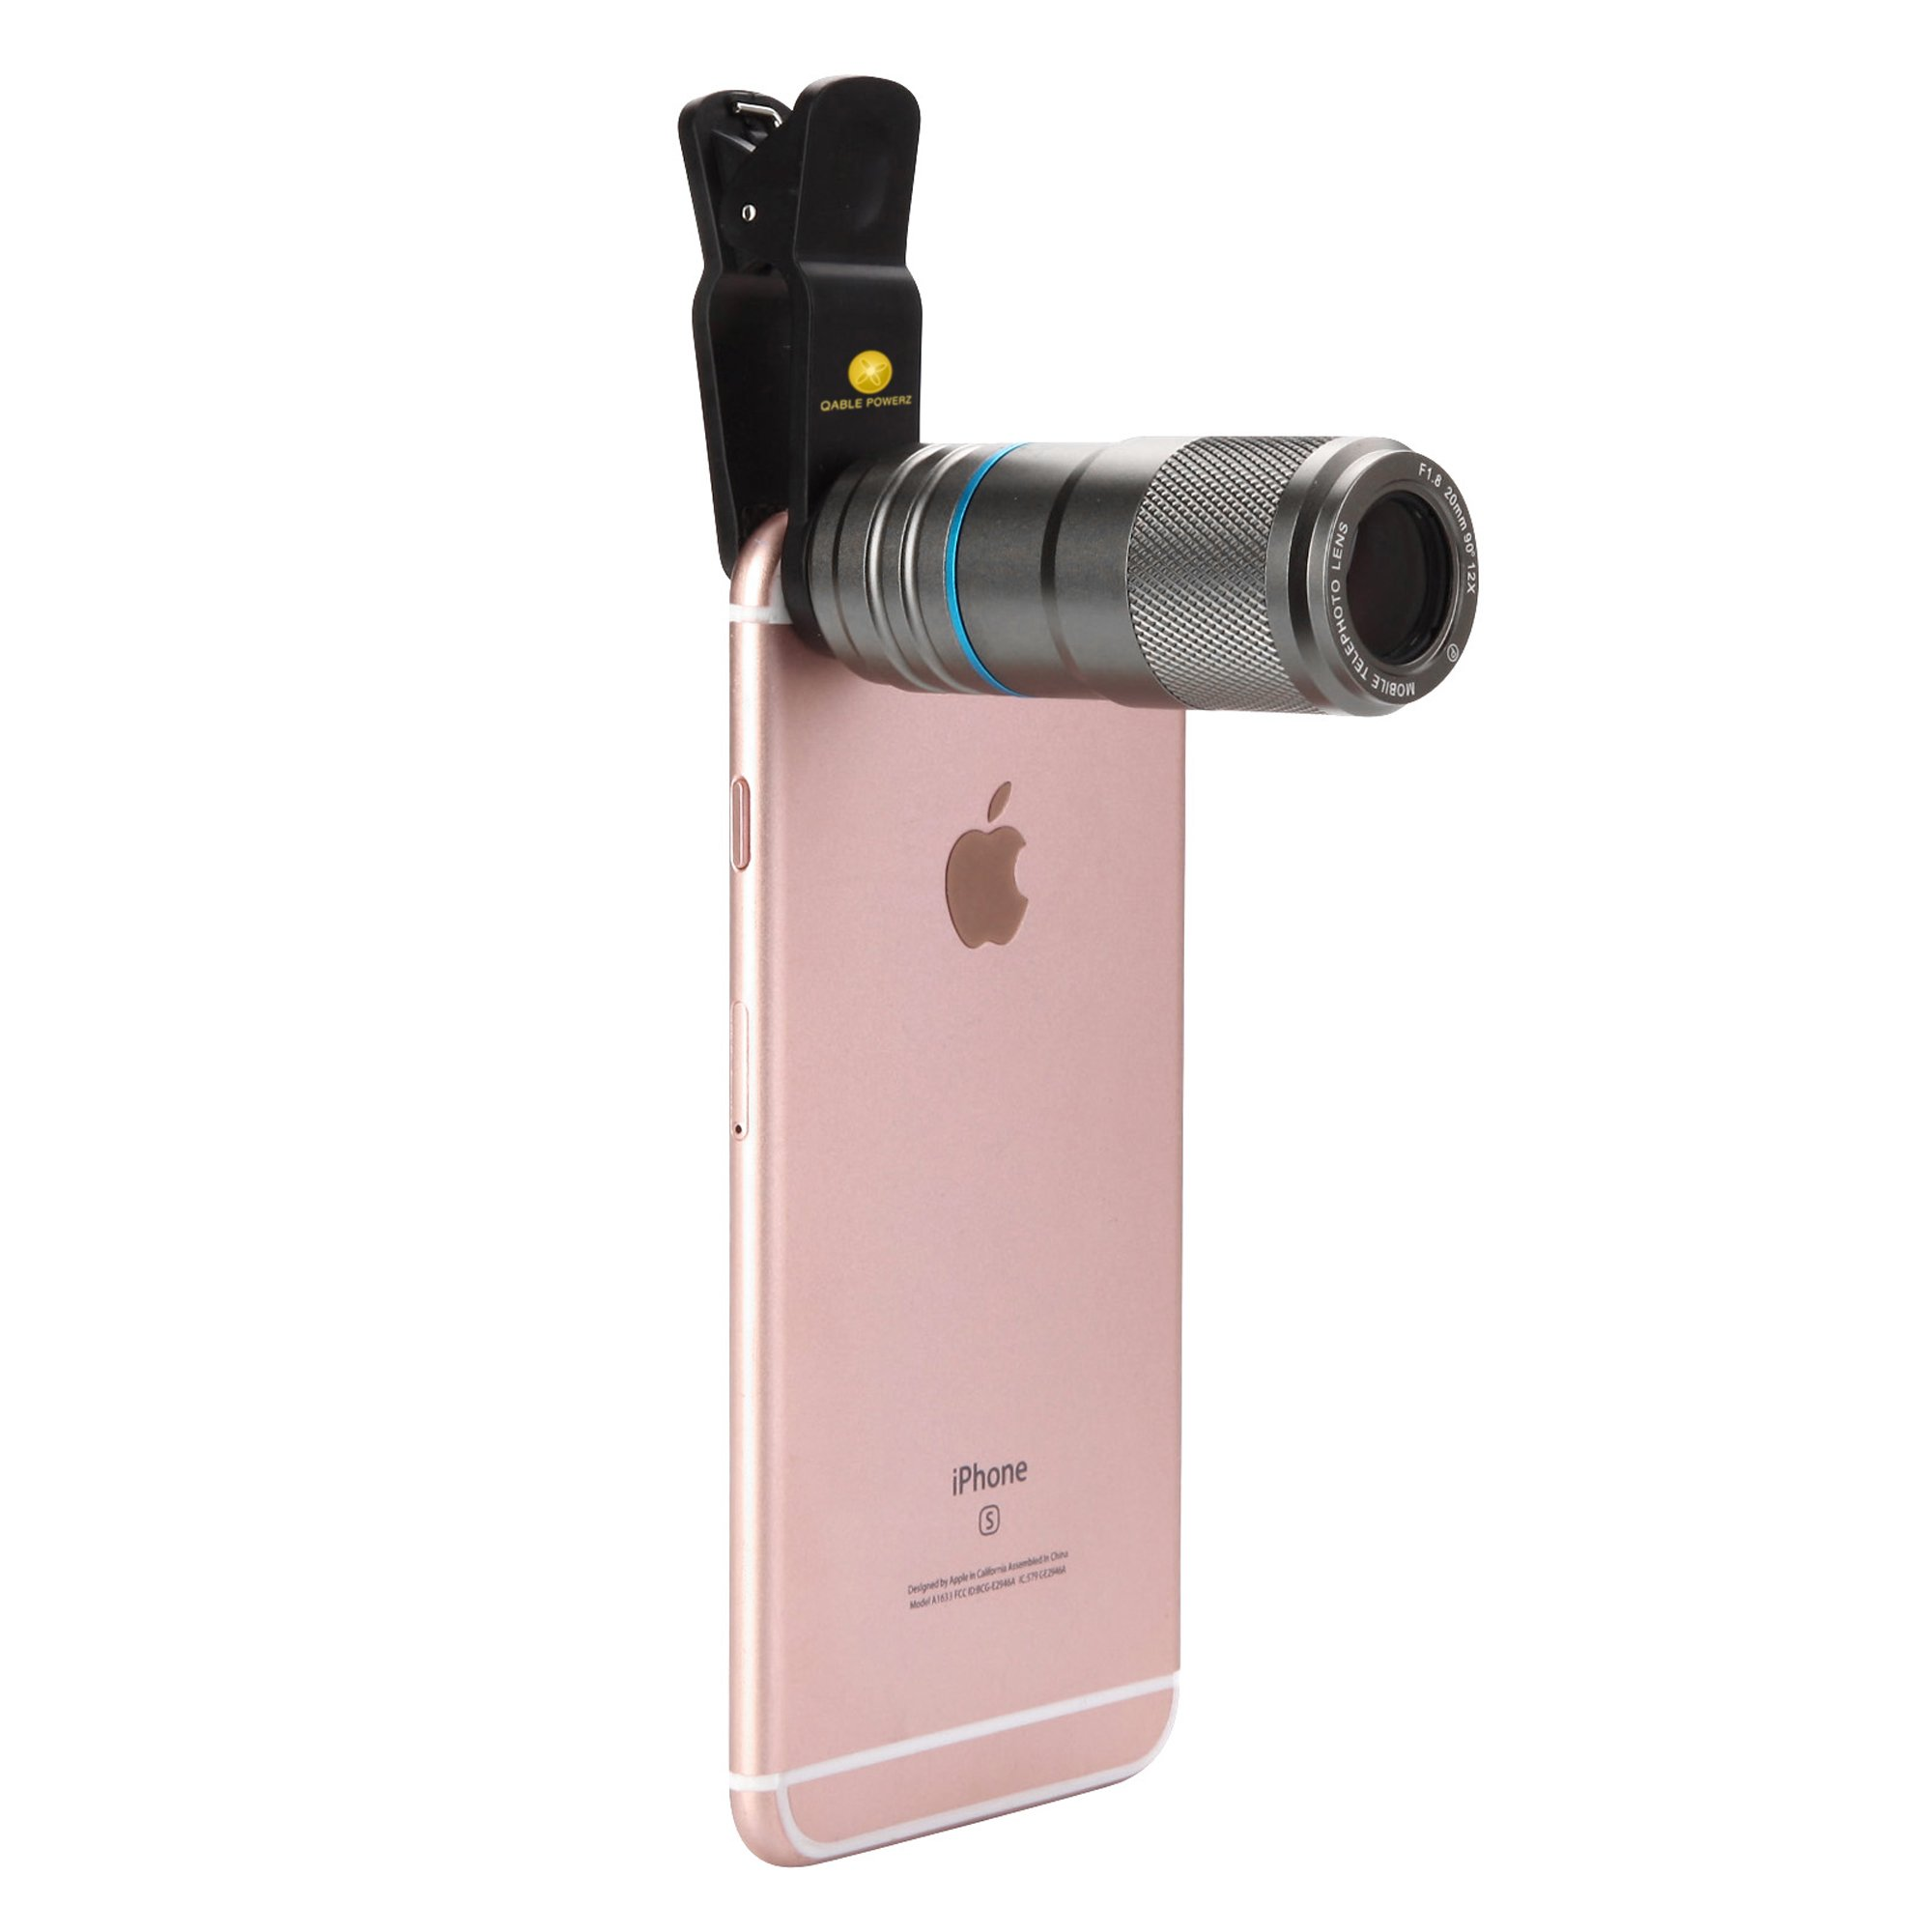 iPhone Clip-on Camera Lens, 12X Zoom Universal Camera Lens Clip-on Telephoto Lens w/ 90-Degree Wide Angle Full Metal Body for Smartphones (Gray)